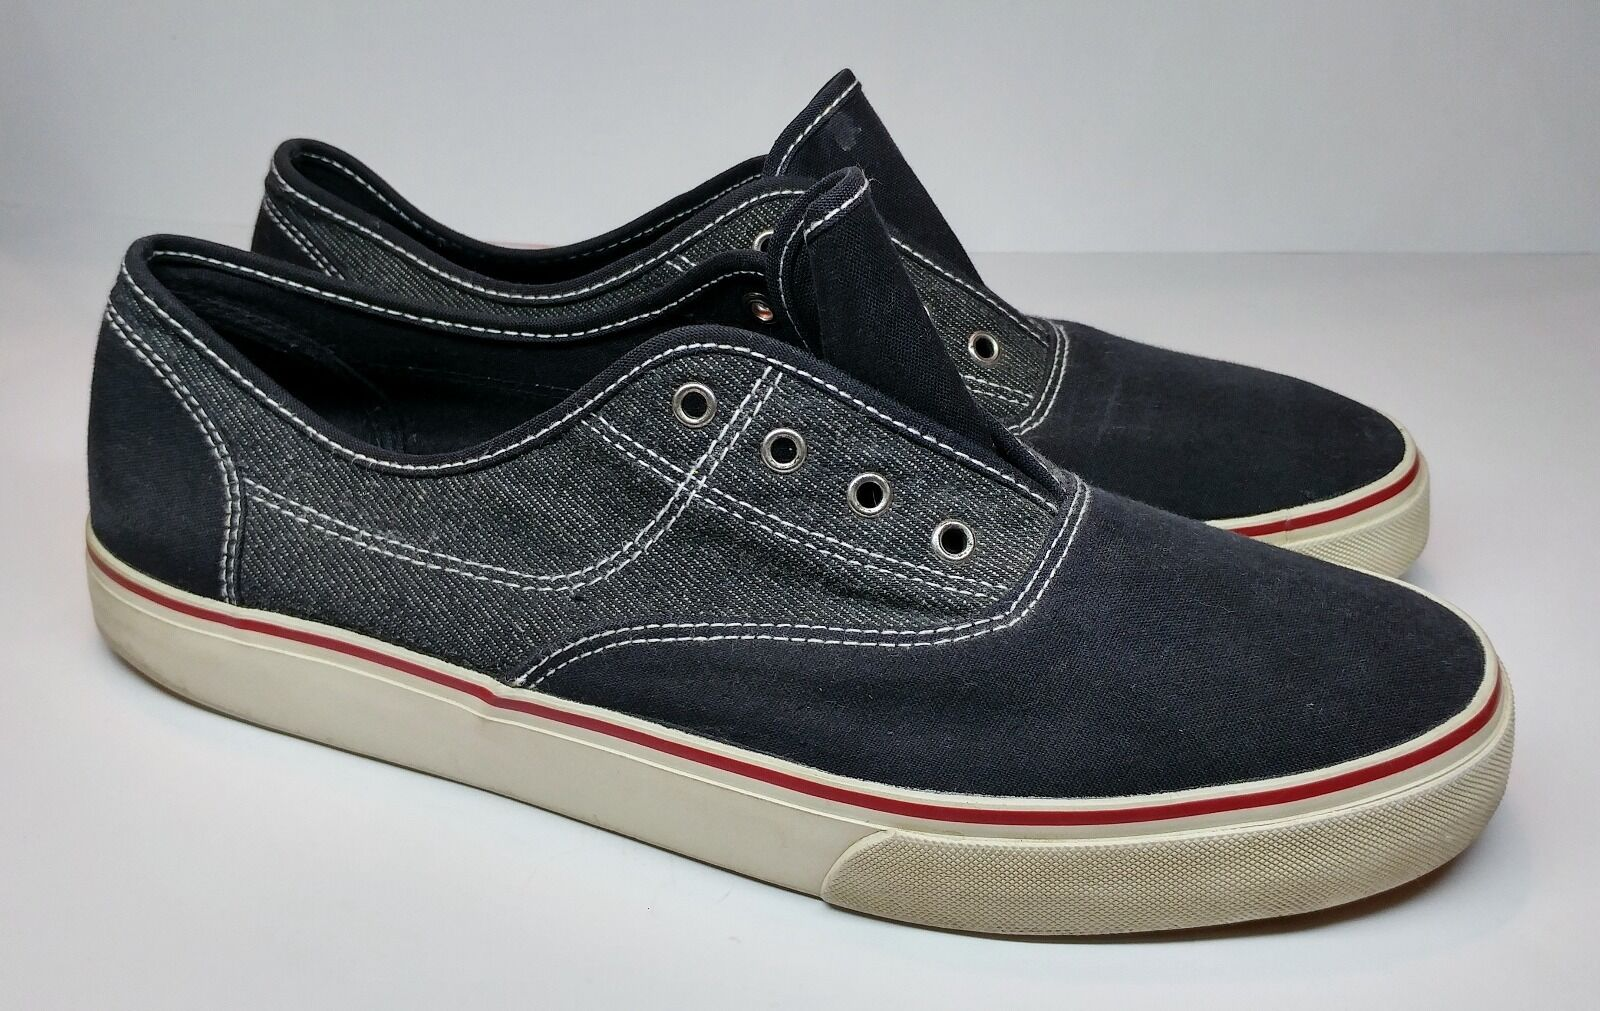 Men's Mossimo Navy Comfort Casual Canvas Shoes Navy Mossimo Blue/White/Red Size 12 ff7b7f